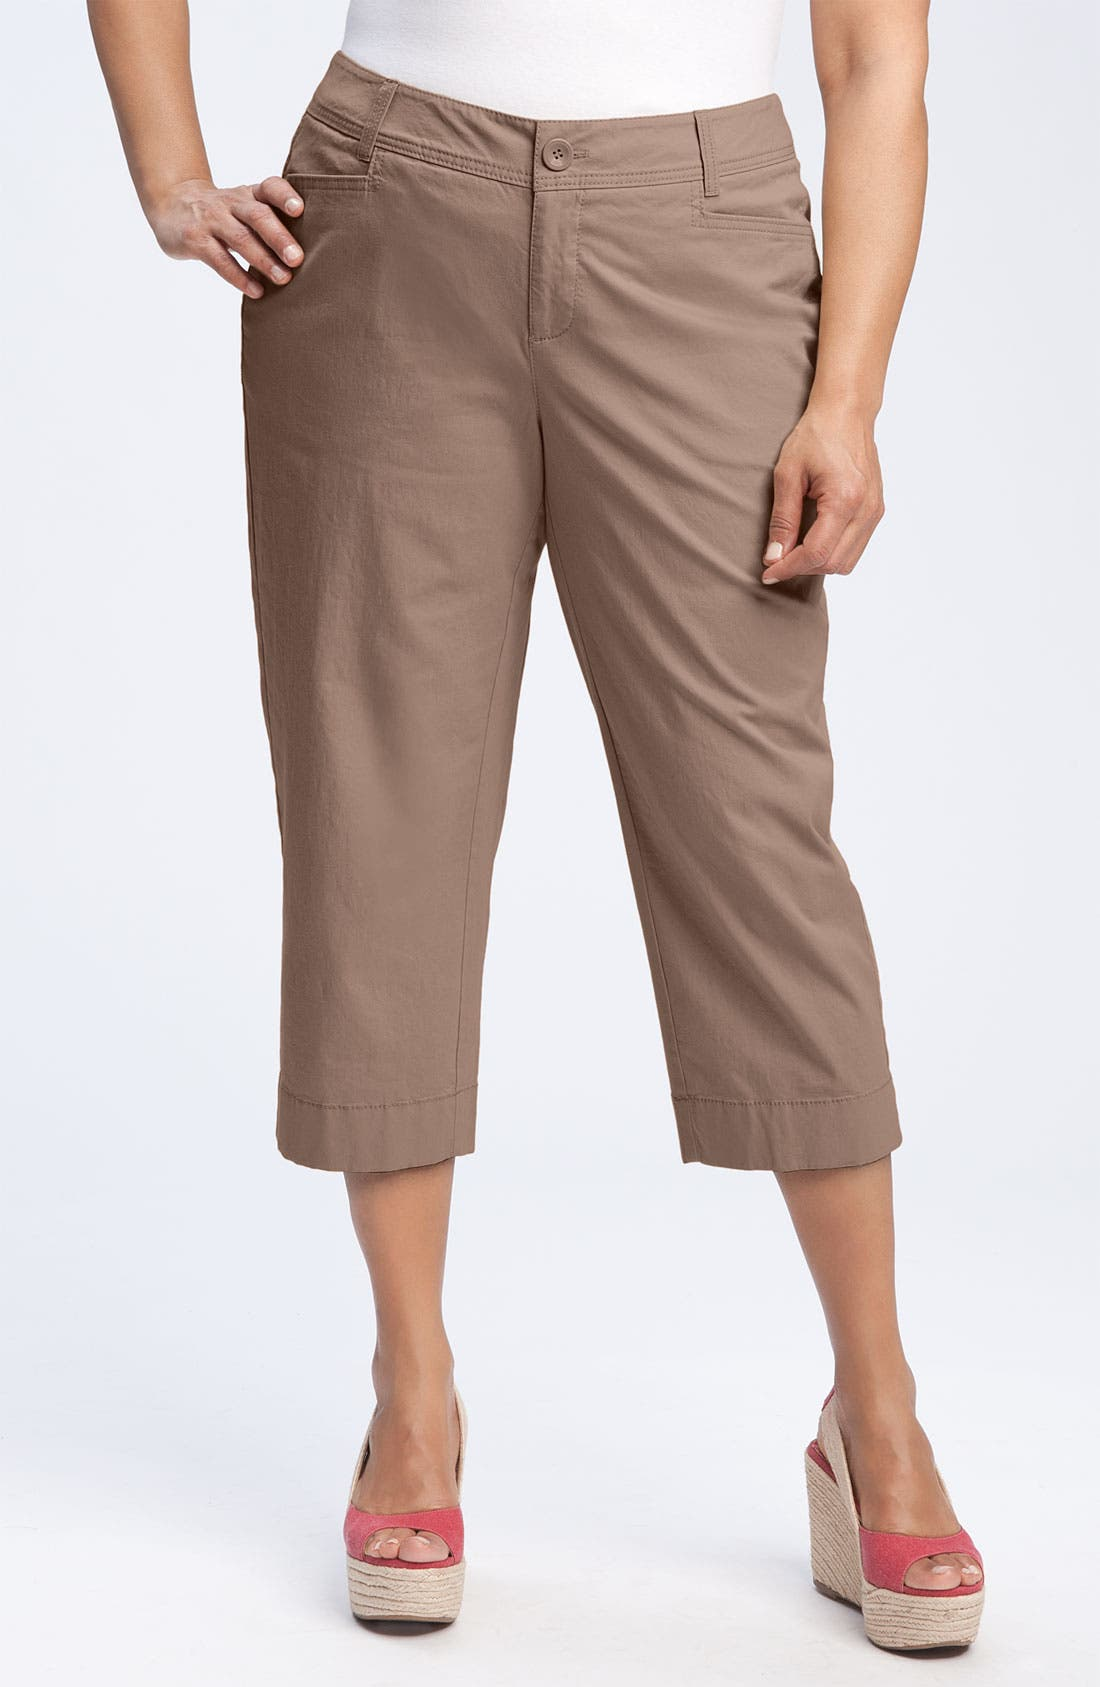 Alternate Image 1 Selected - Sejour 'Megan' Crop Pants (Plus Size)